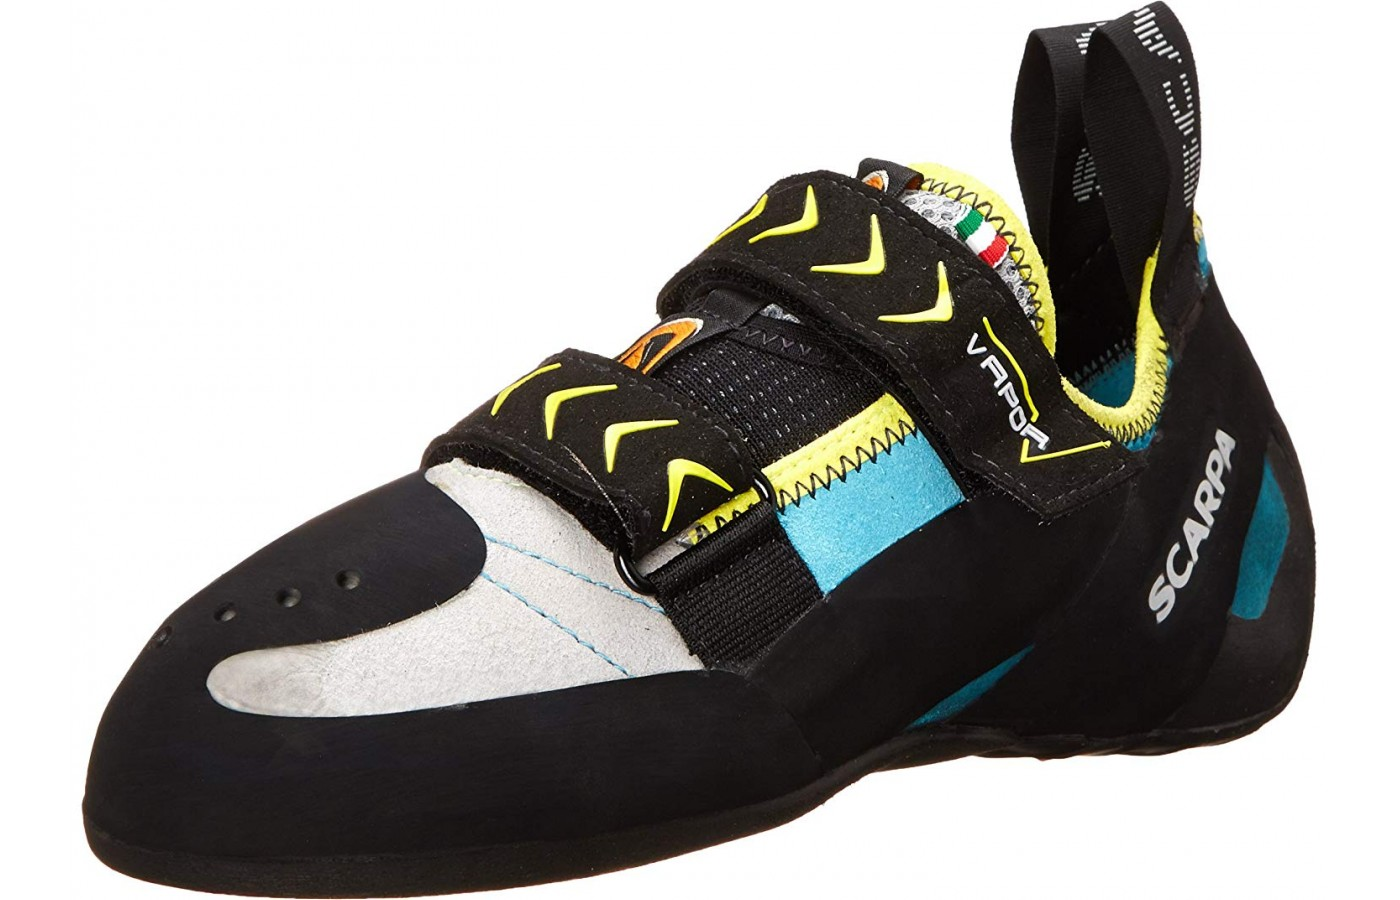 The Scarpa Vapor V is an all-around high-performance edge shoe.